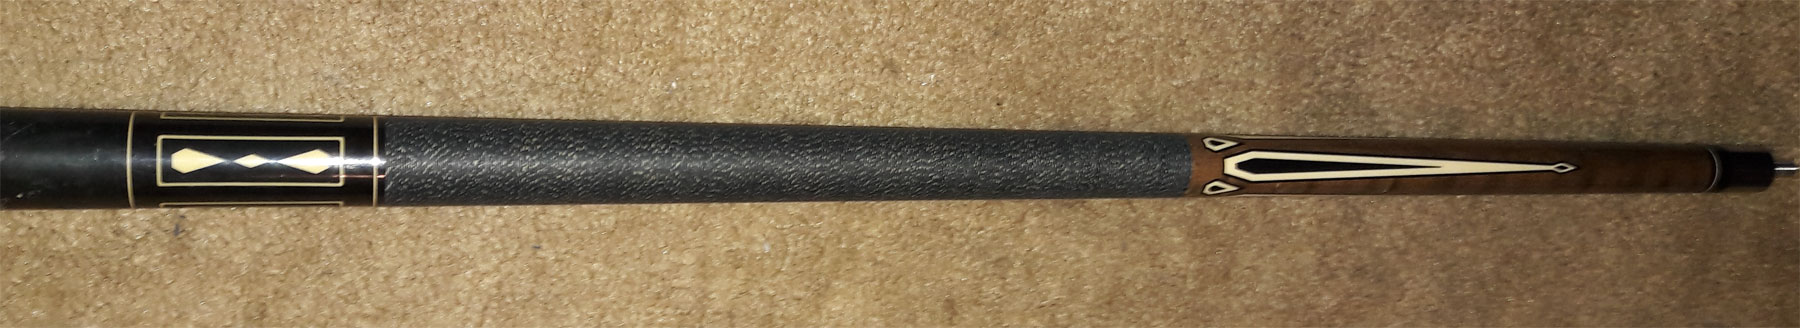 Mali pool cue identification 2